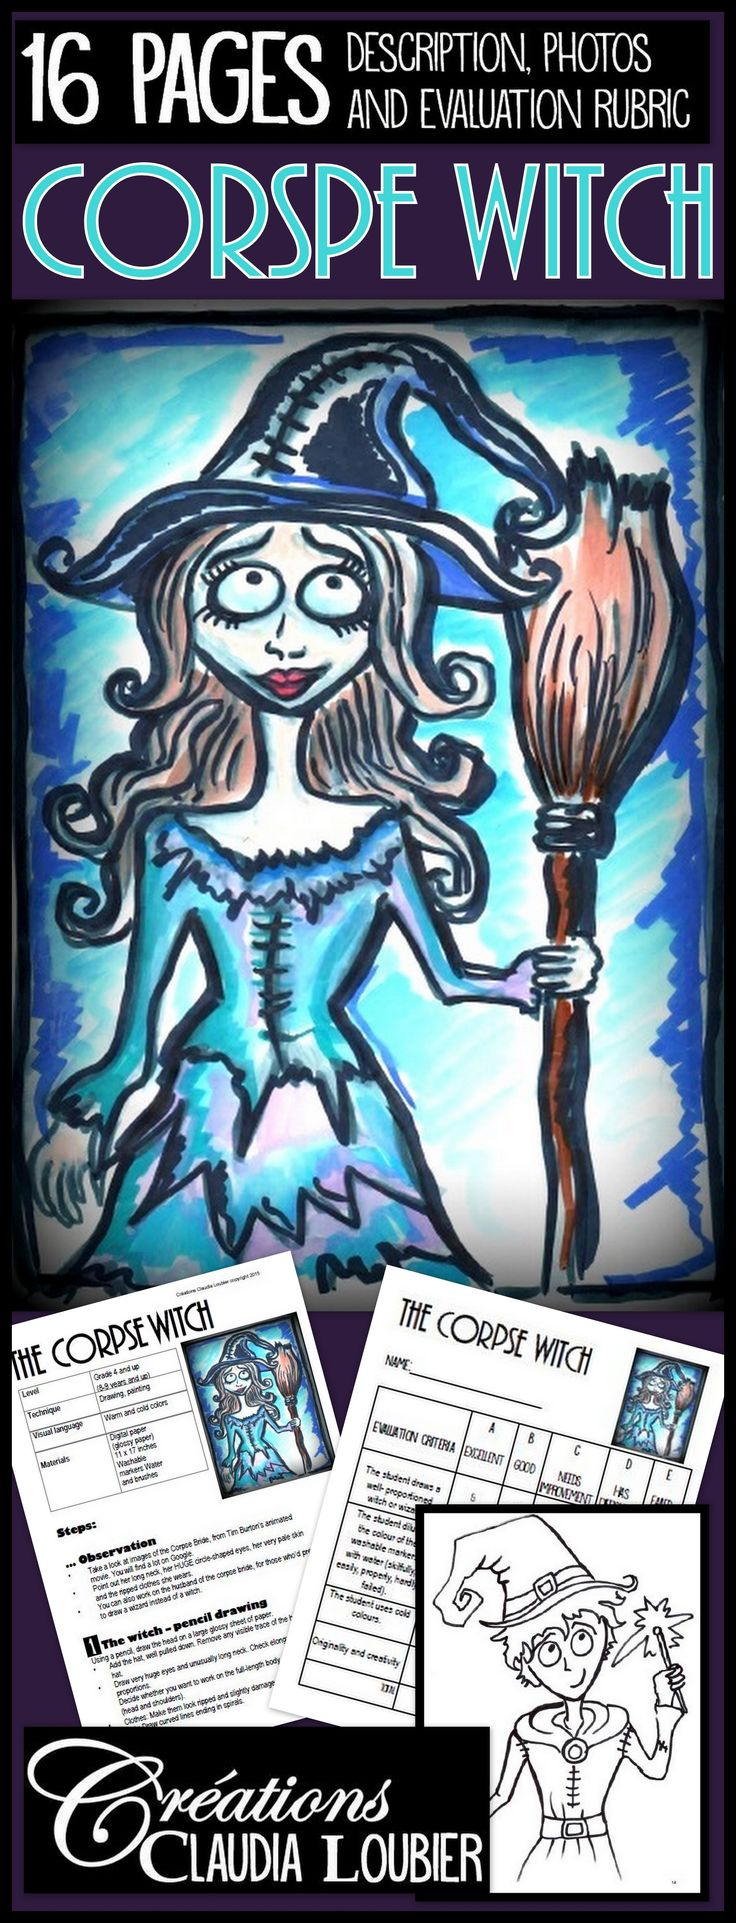 Art project inspired from Tim Burton's animated movie The Corpse Bride. Includes two pages of complete description of the project and 16 pages of illustrations that can you can display on an interactive whiteboard or print out. Materials are very simple. All you will need are washable markers and glossy paper! Evaluation chart and picture of a witch included.